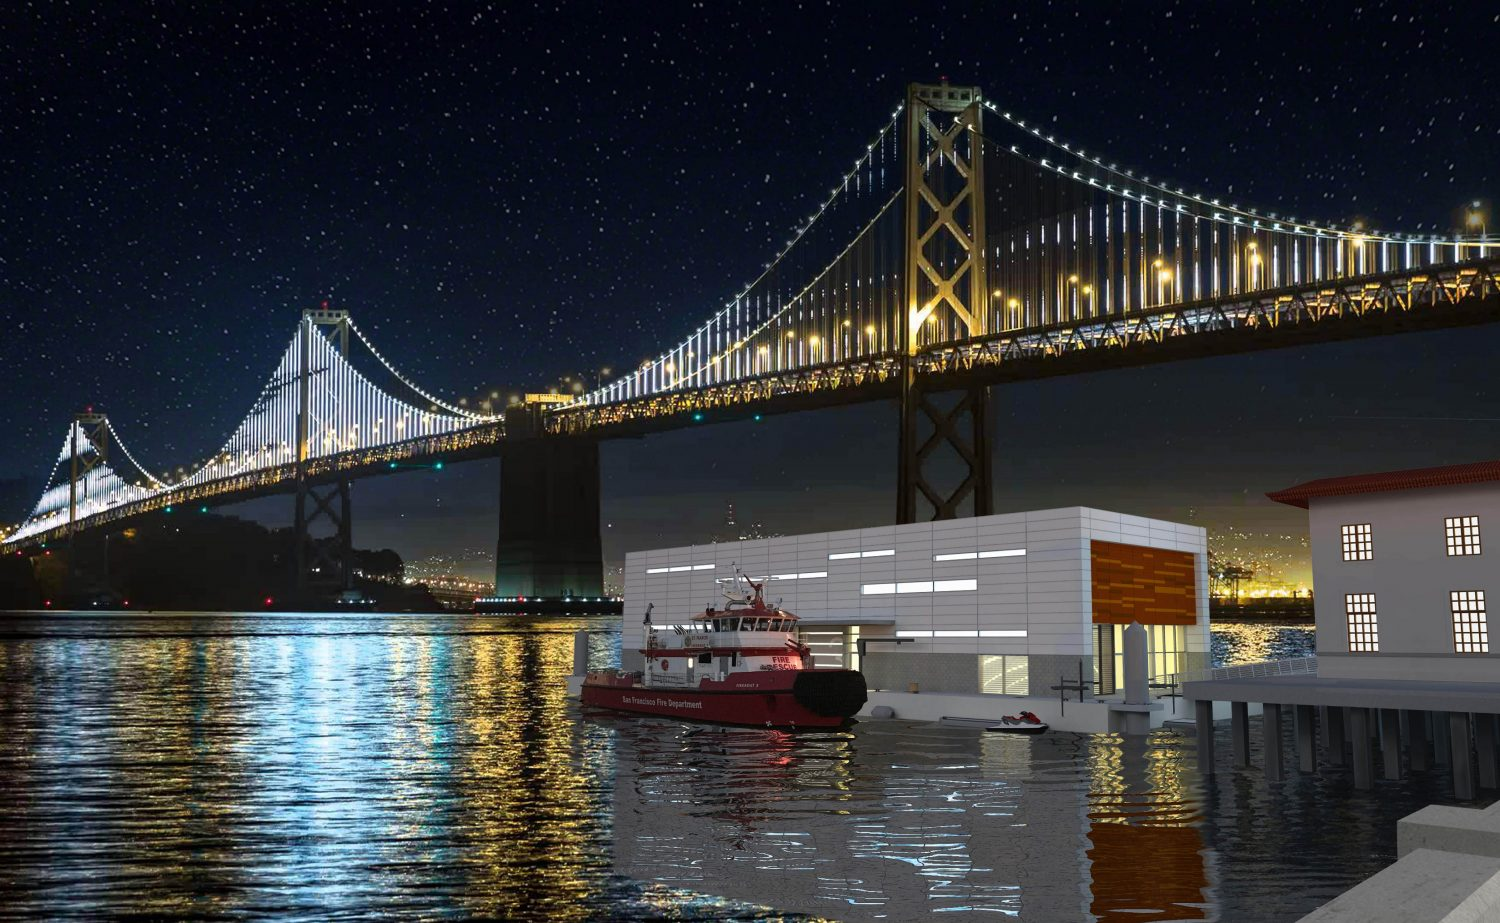 San Francisco Fireboat Station 35